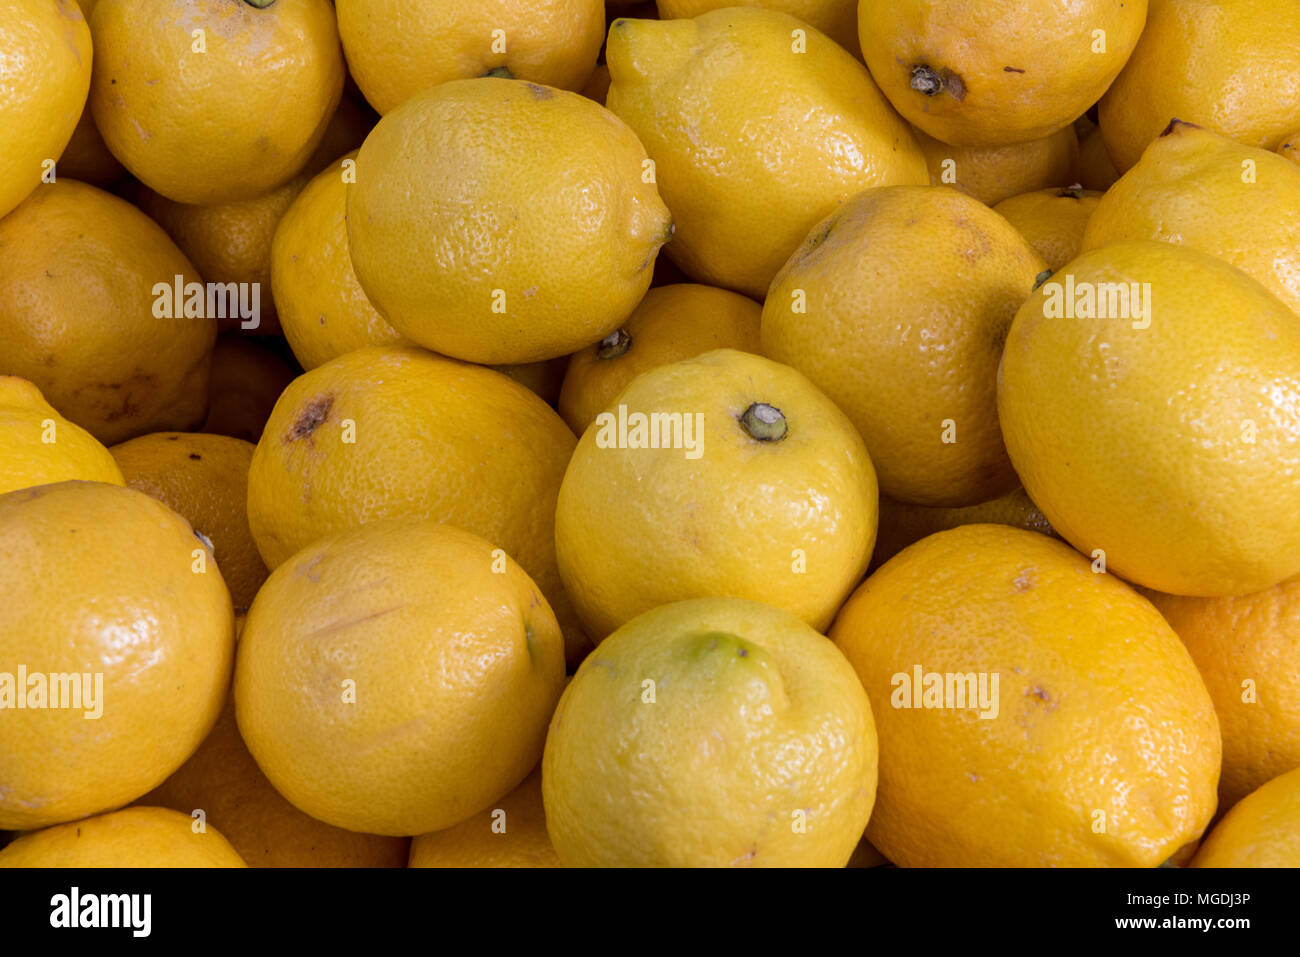 Freshly picked lemons or citrus fruits on display on a market traders greengrocery stall at borough market. Fresh fruits and vegetables greengroceries - Stock Image